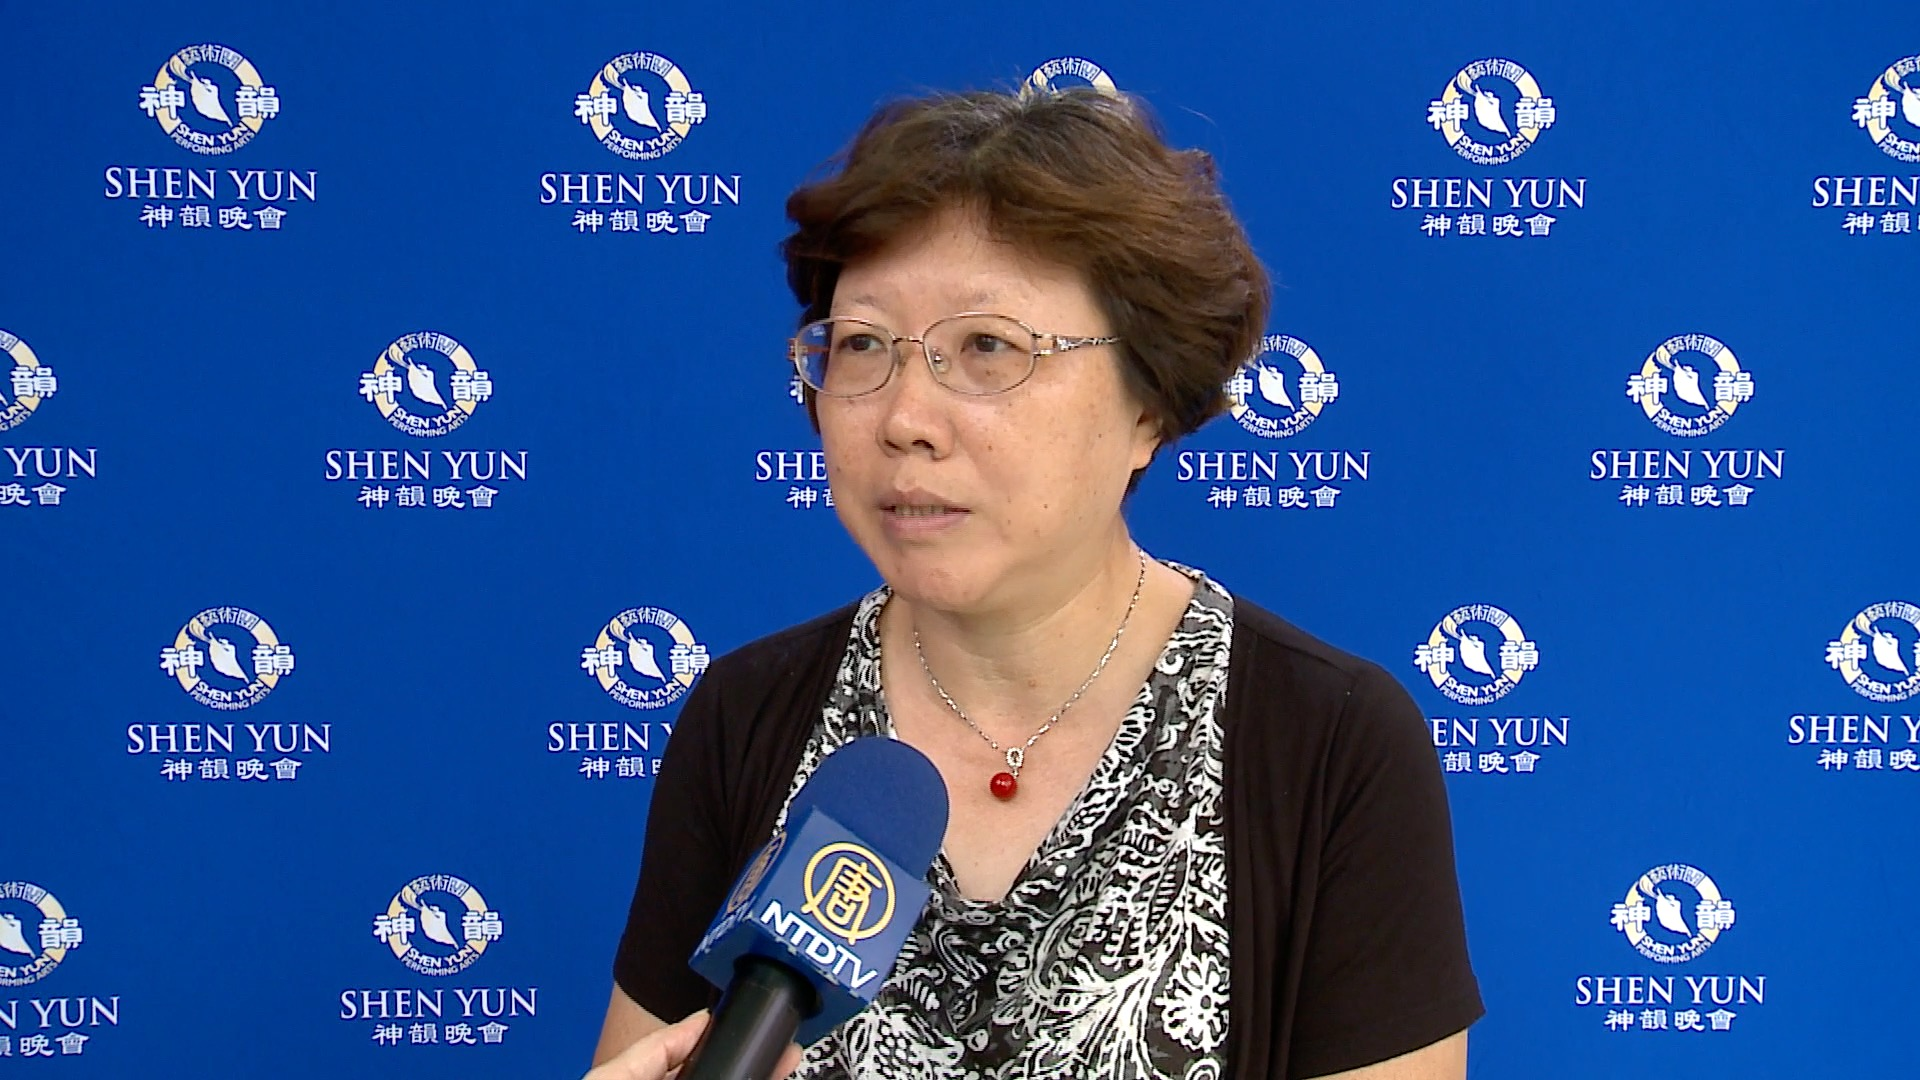 Pingtung County Director of Education Praises Shen Yun Symphony Orchestra